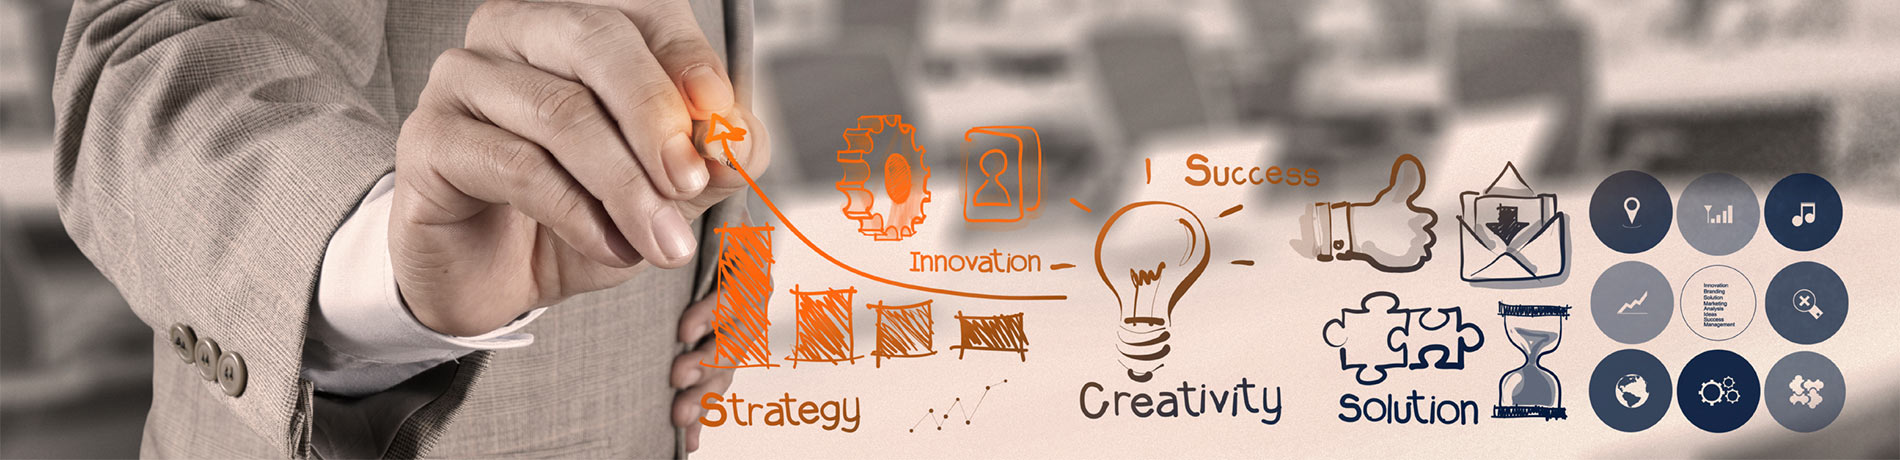 RSA Marketing Canada marketing services with man drawing strategy, creativity, innovation, success and solution on clear board.